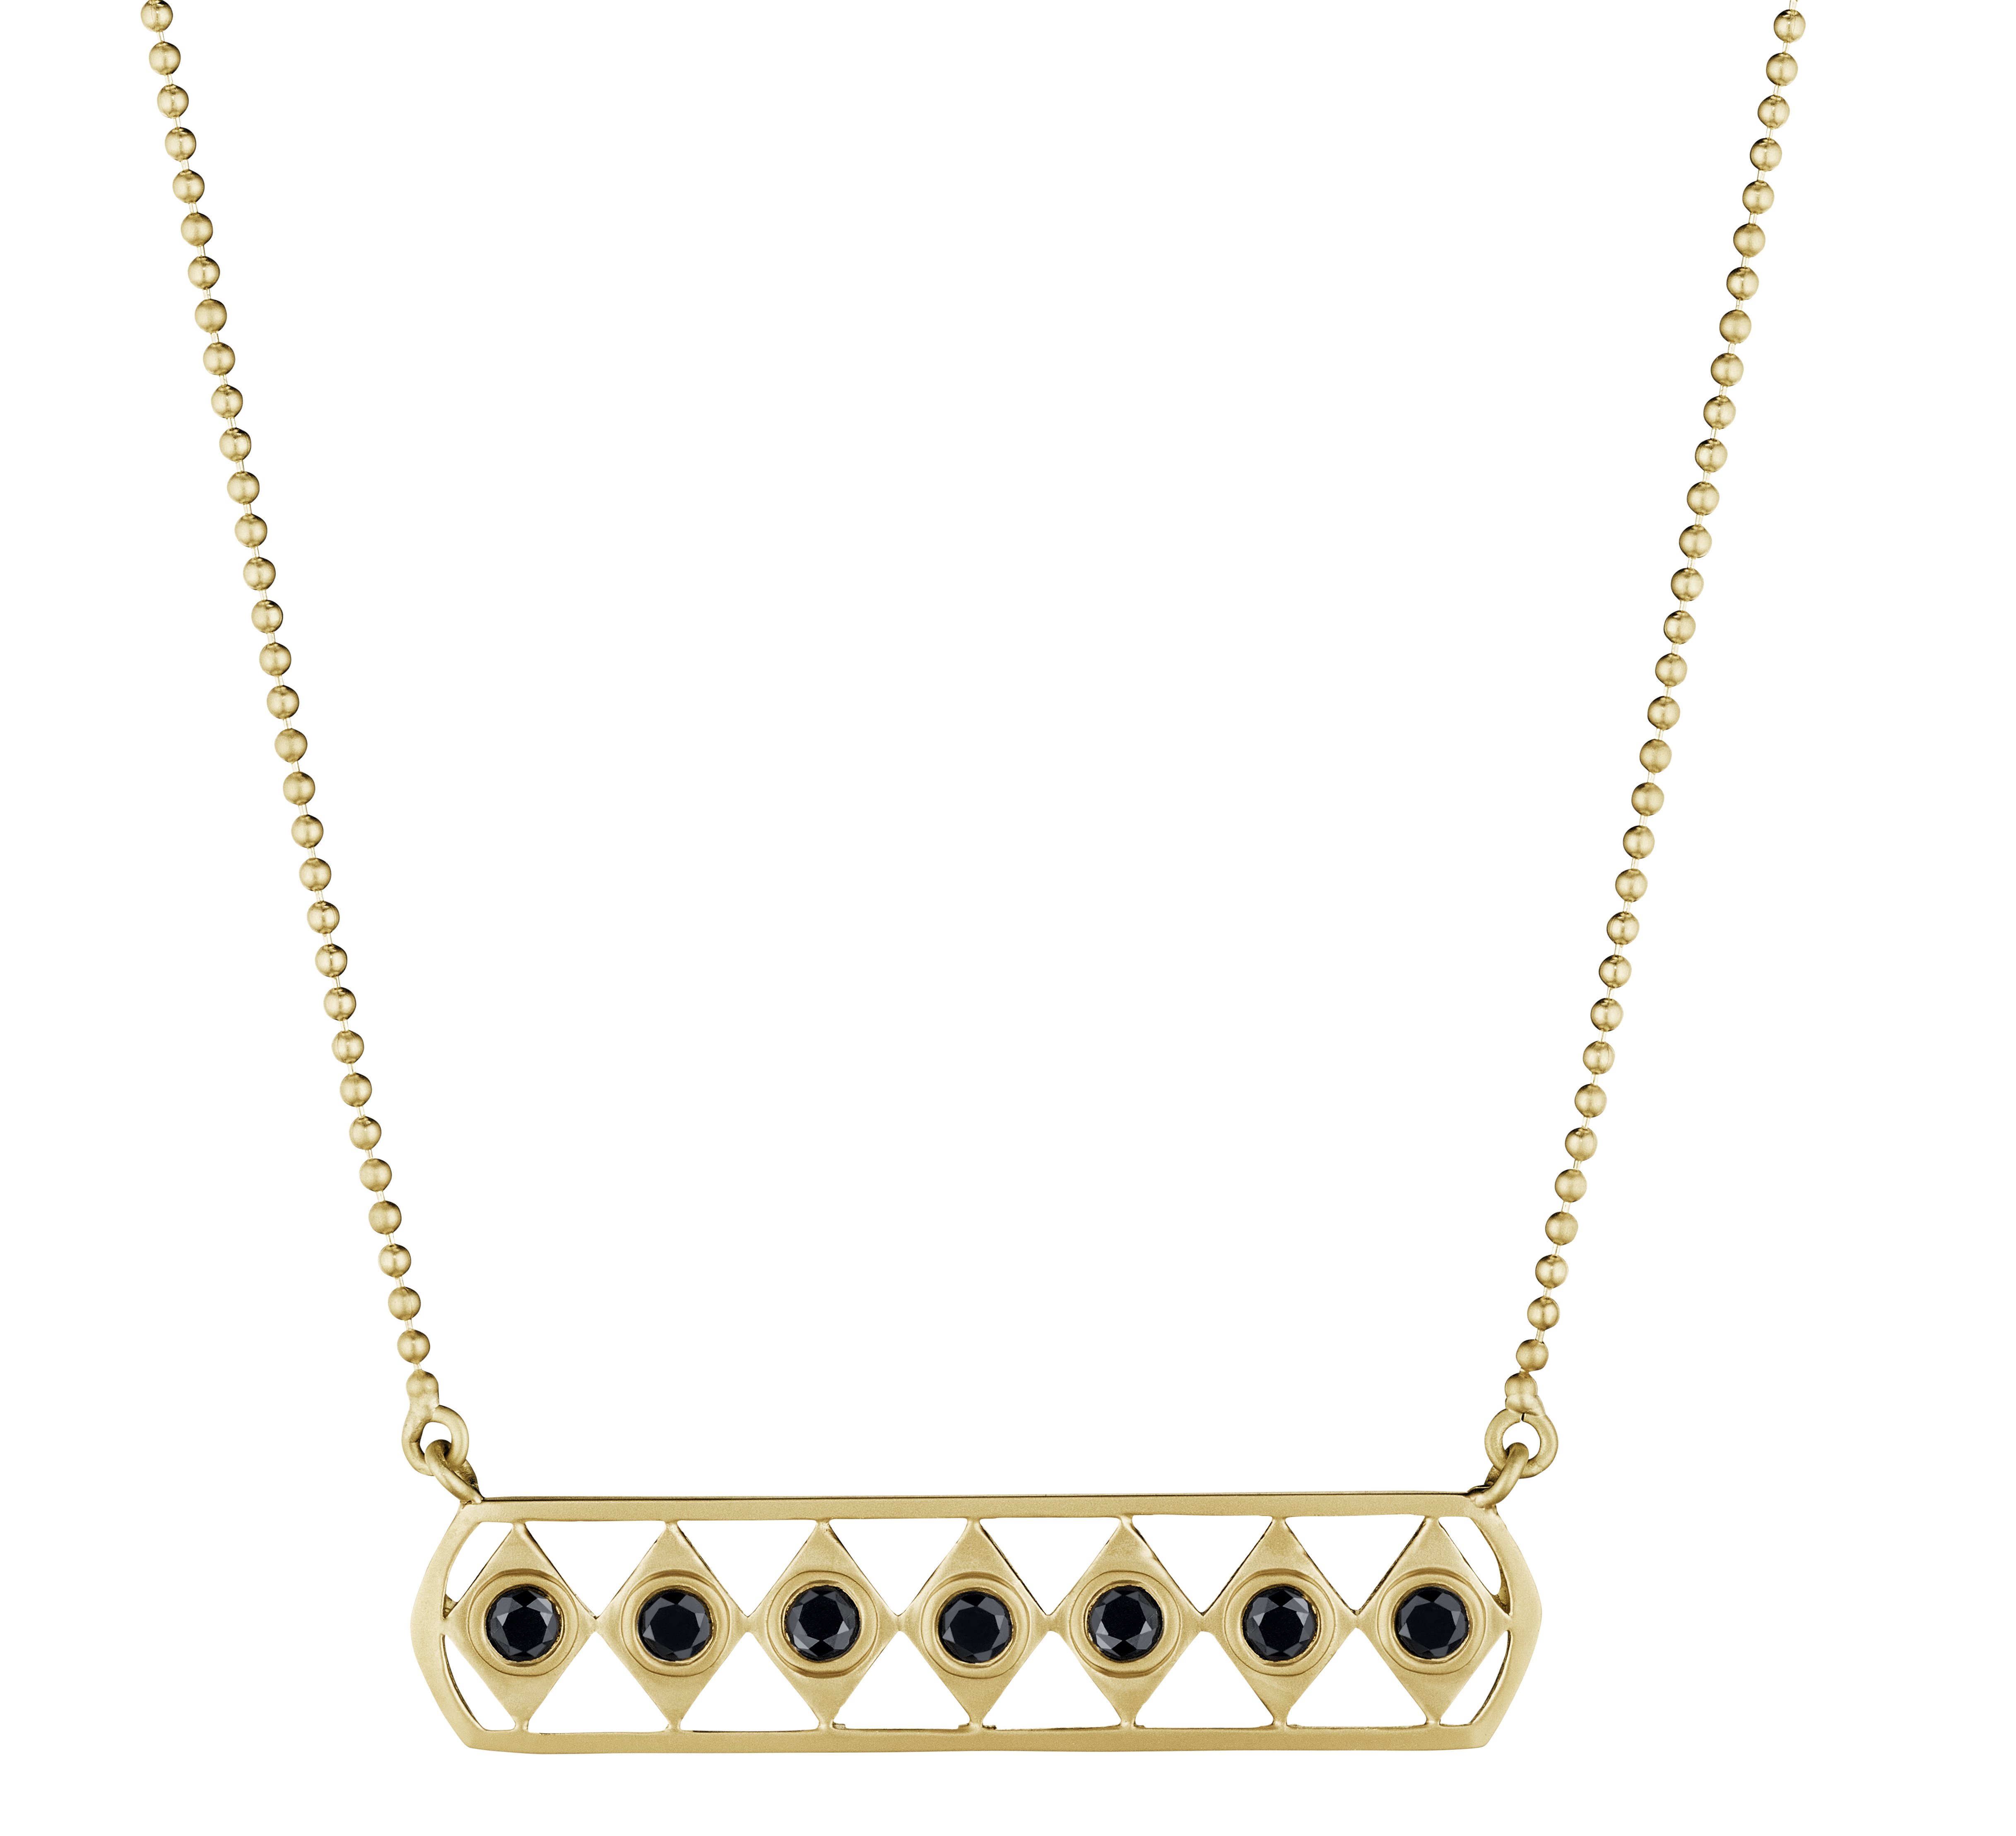 Doryn Wallach Gladiator bar necklace | JCK On Your Market